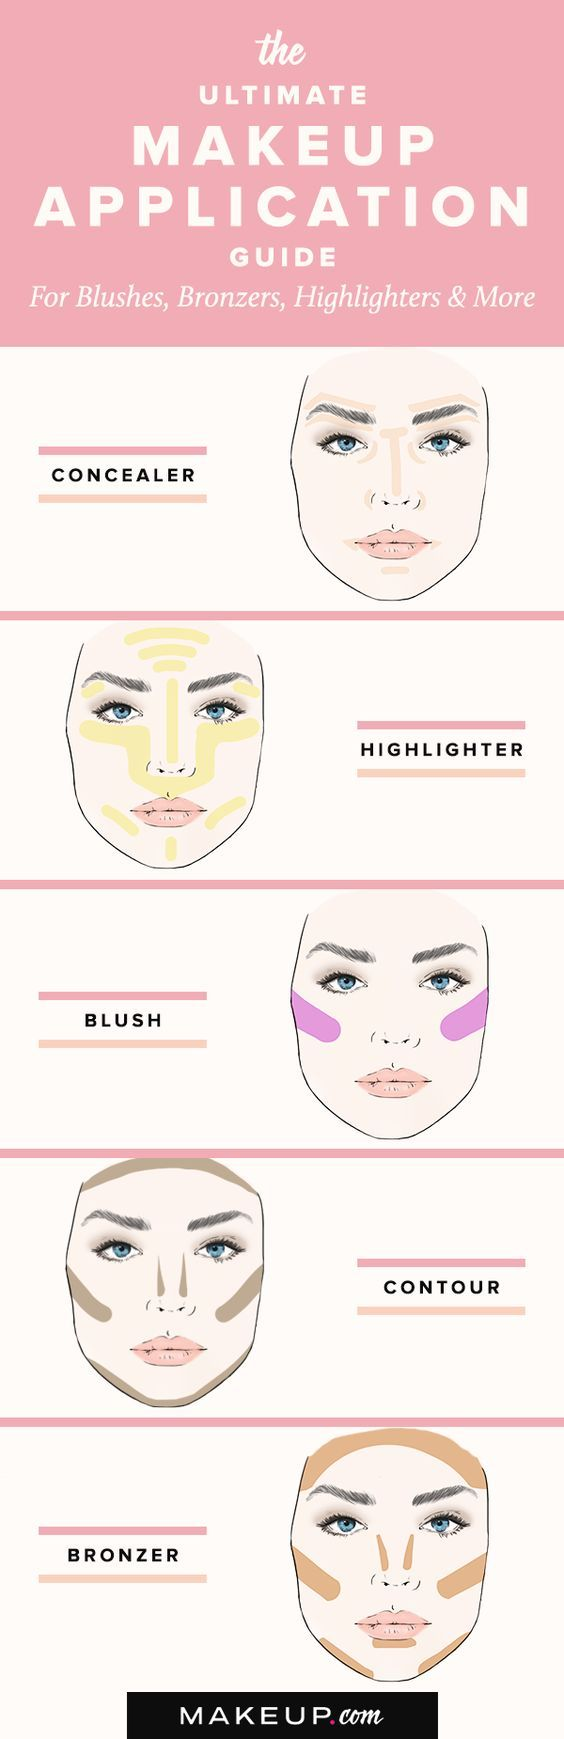 We're taking the mystery out of makeup application by showing you how to apply foundation, contour, blush, highlighter and more. Follow our guide now!